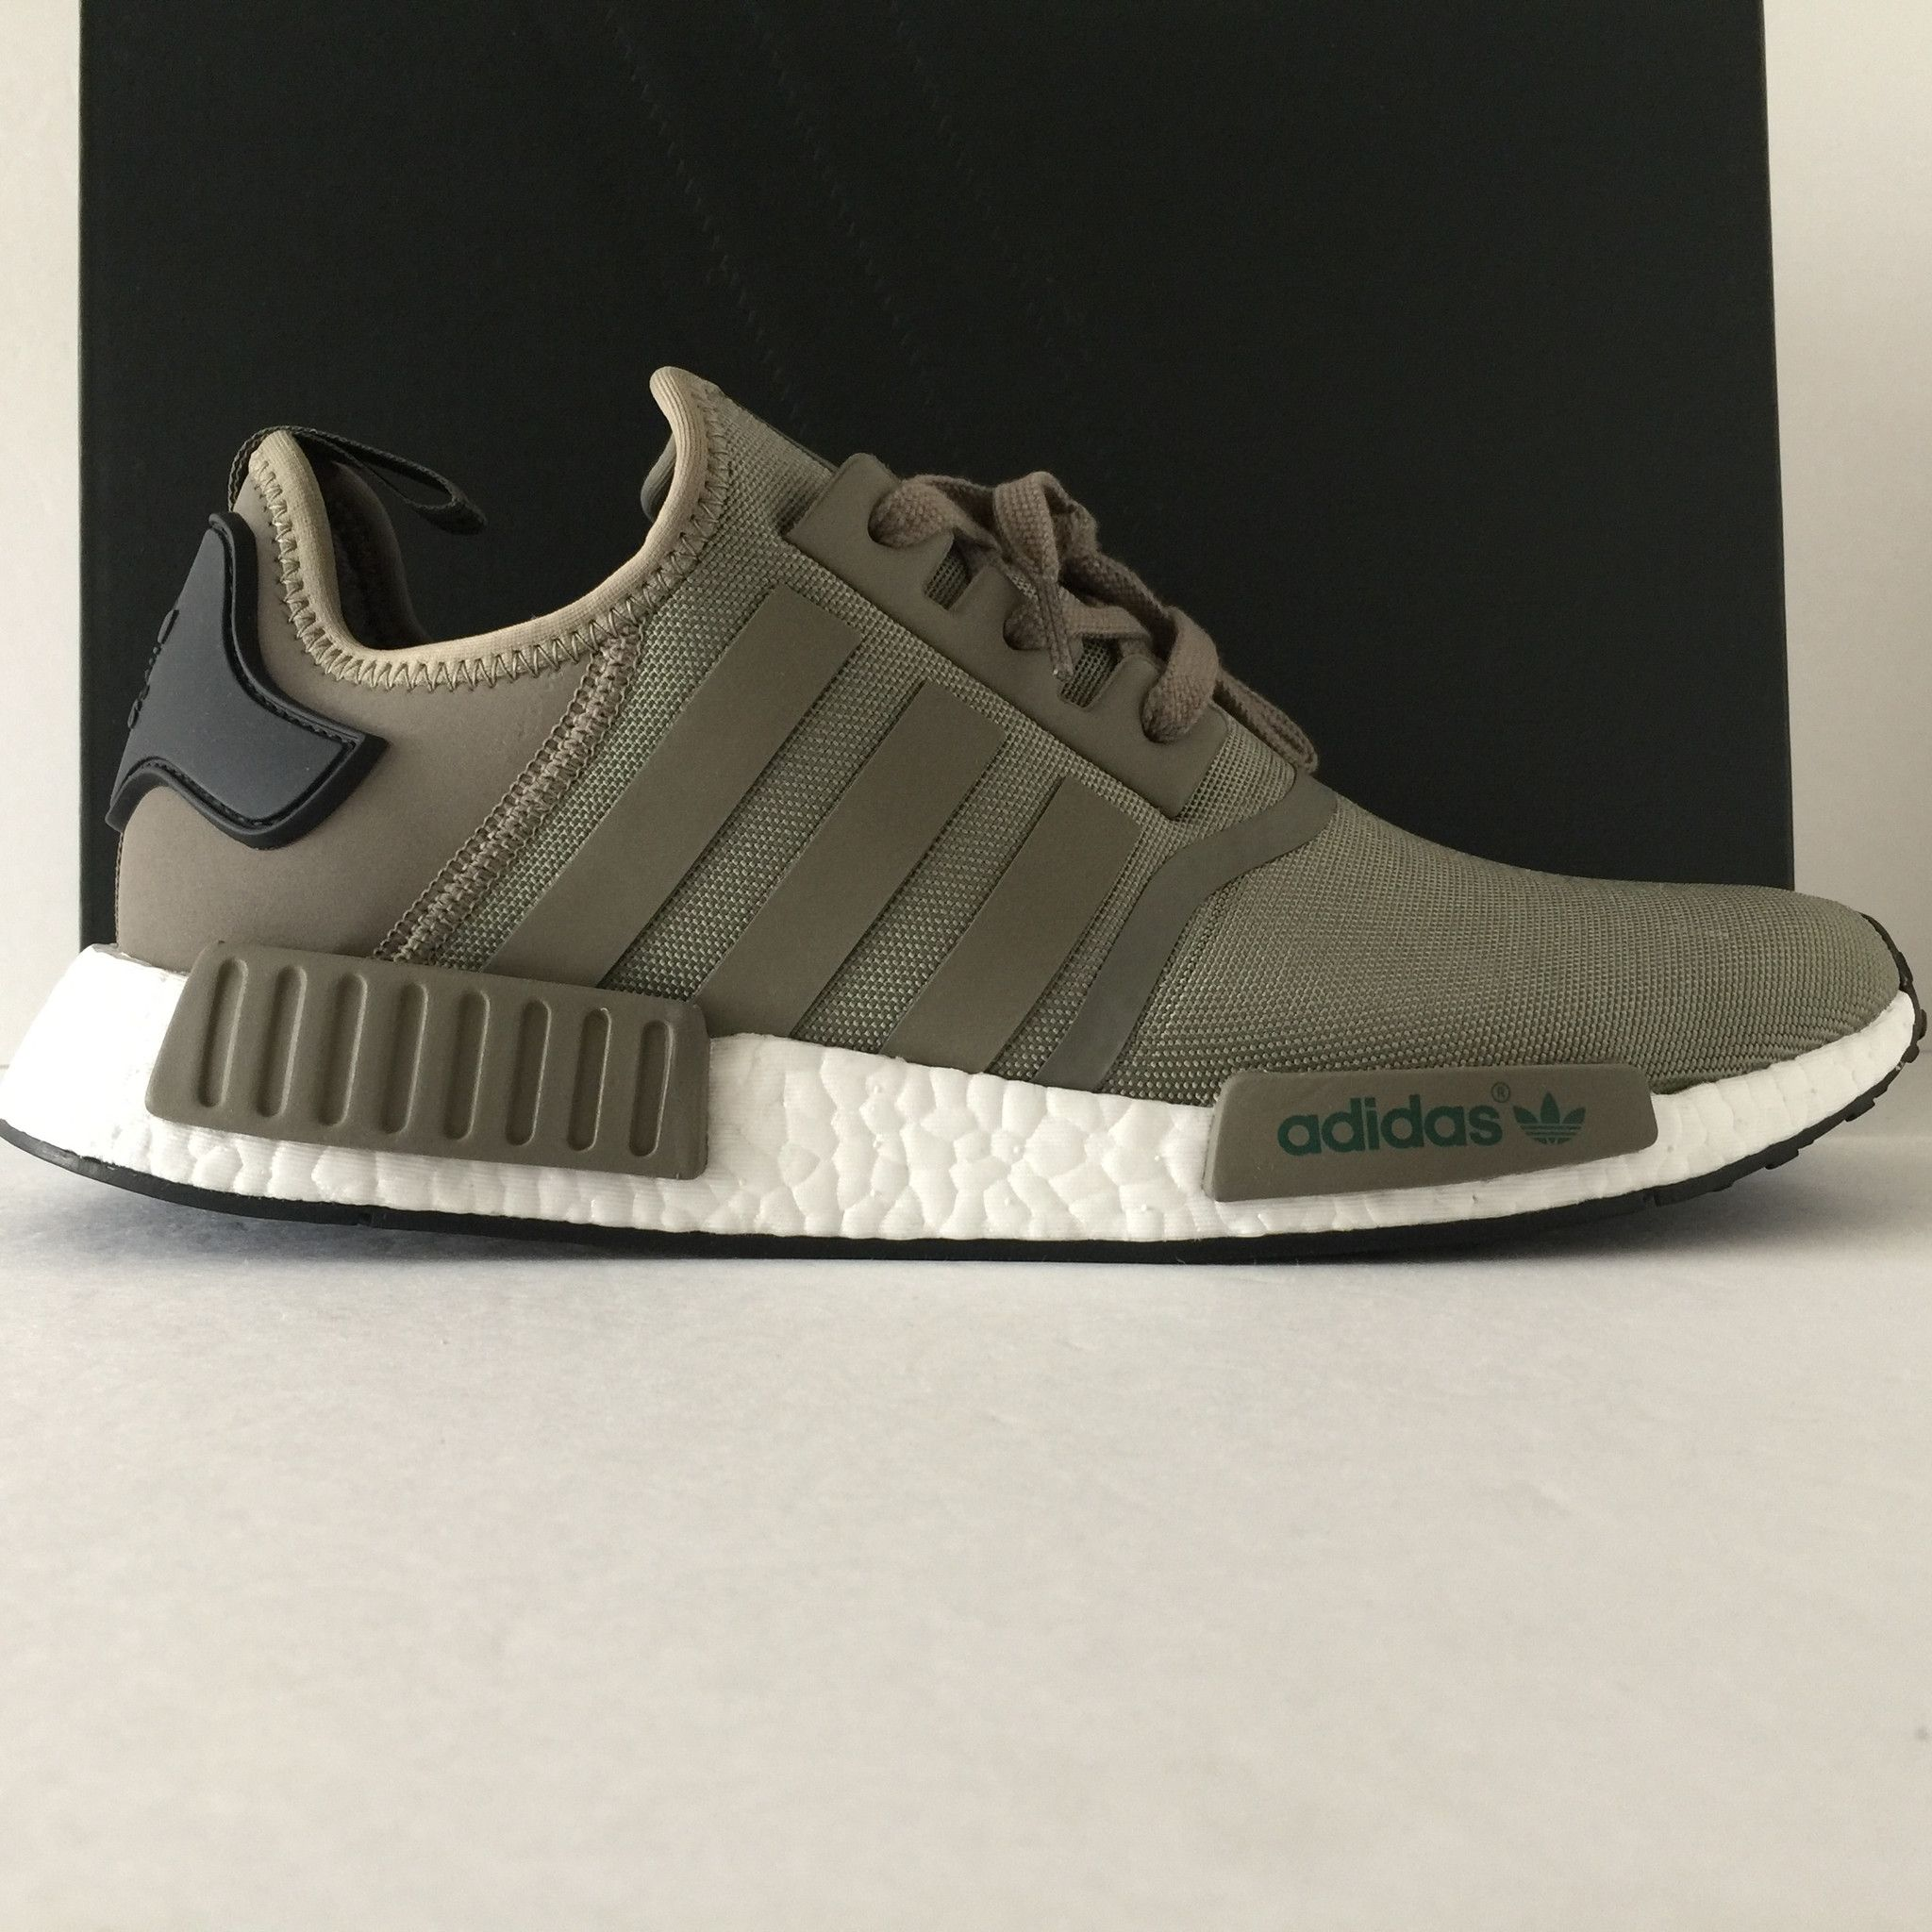 Ds Adidas Nmd R1 Trace Cargo Trail Size 11 5 Size 13 Adidas Shoes Women Adidas Running Shoes Fashion Shoes